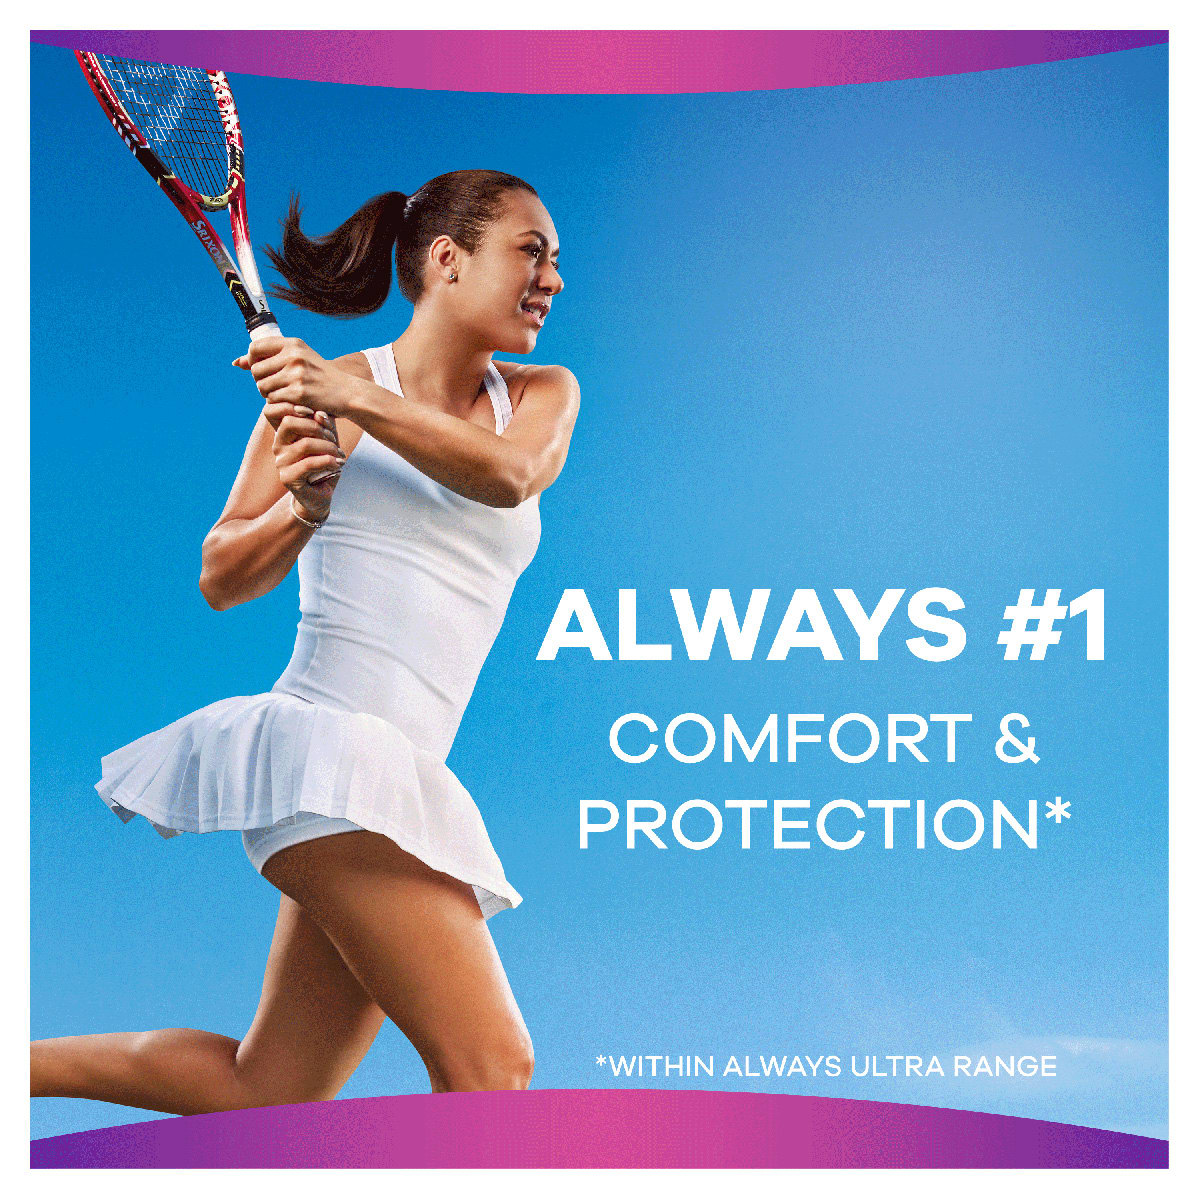 ALWAYS Platinum Night Comfort & Protection